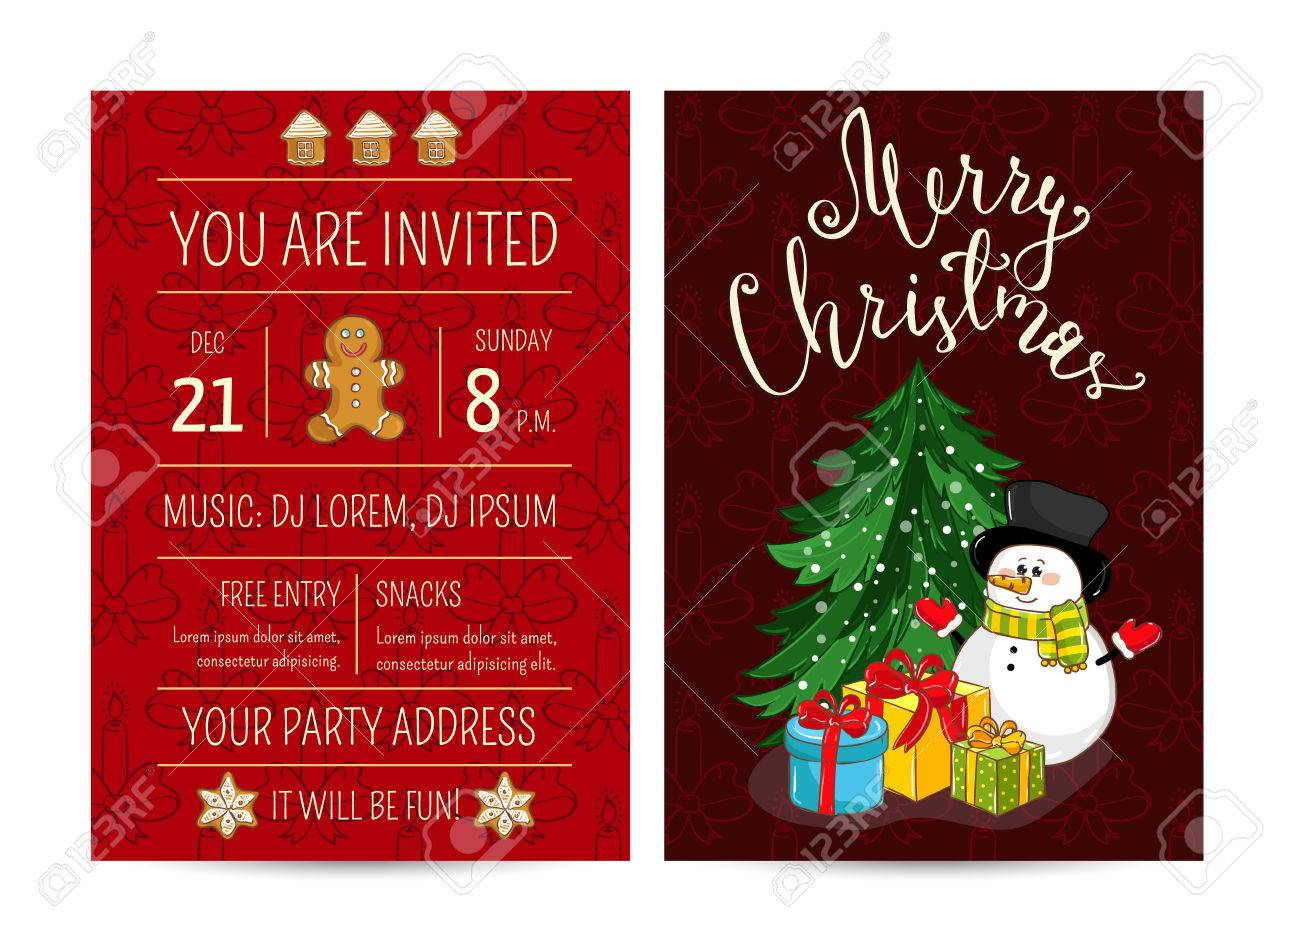 Invitation on christmas party with date and time cute snowman invitation on christmas party with date and time cute snowman wrapped gifts christmas m4hsunfo